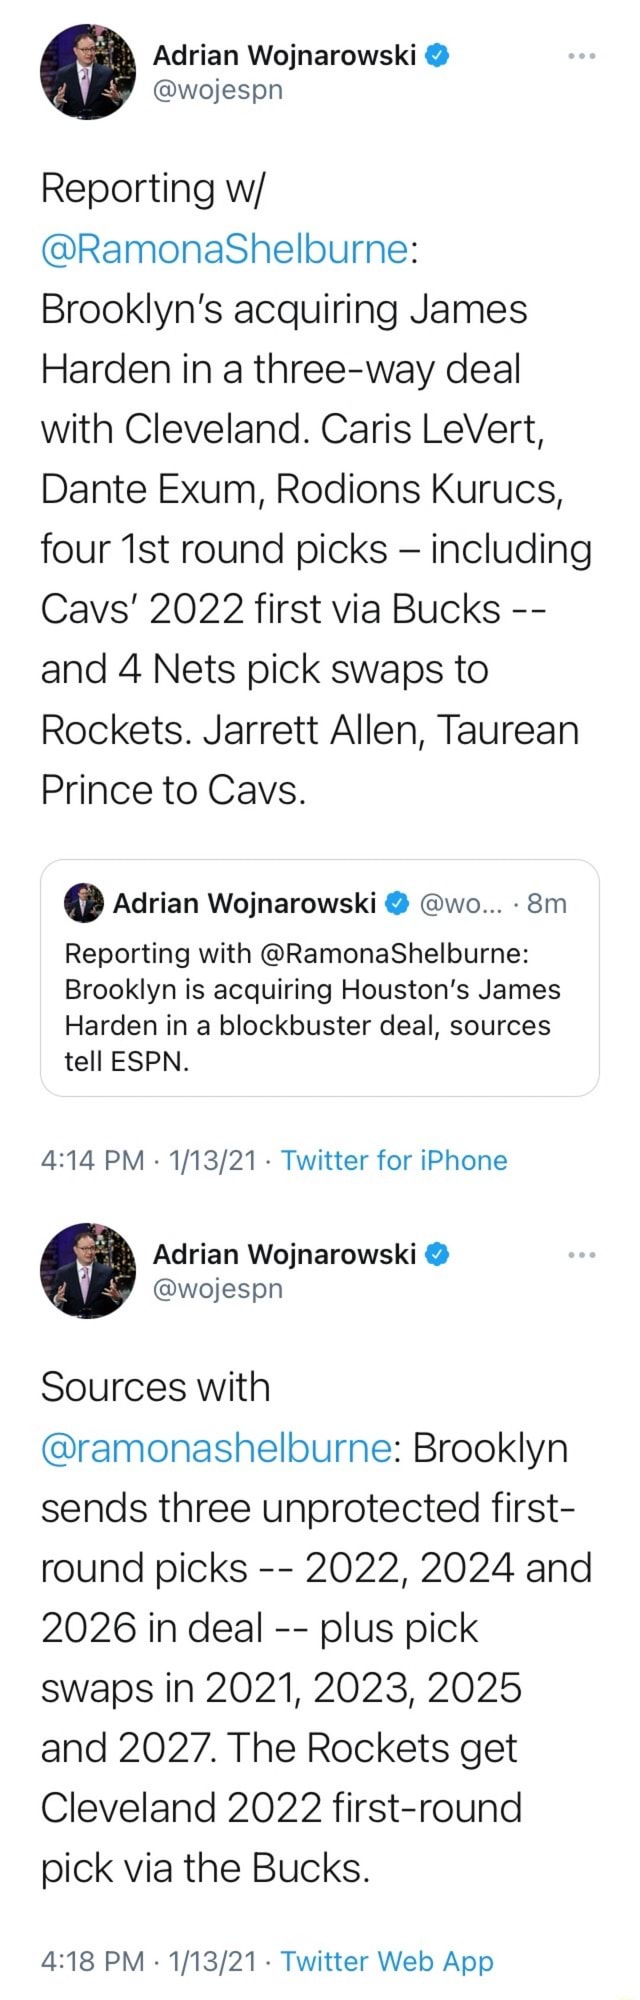 Reporting w RamonaShelburne Brooklyn's acquiring James Harden in a three way deal with Cleveland. Caris LeVert, Dante Exum, Rodions Kurucs, four round picks including Cays 2022 first via Bucks and 4 Nets pick swaps to Rockets. Jarrett Allen, Taurean Prince to Cavs. Adrian Wojnarowski wo Reporting with RamonaShelburne Brooklyn is acquiring Houston's James Harden in a blockbuster deal, sources tell ESPN. PM Twitter for iPhone Adrian Wojnarowski Sources with ramonashelburne Brooklyn sends three unprotected first round picks 2022, 2024 and 2026 in deal plus pick swaps in 2021, 2023, 2025 and 2027. The Rockets get Cleveland 2022 first round pick via the Bucks. PM Twitter meme